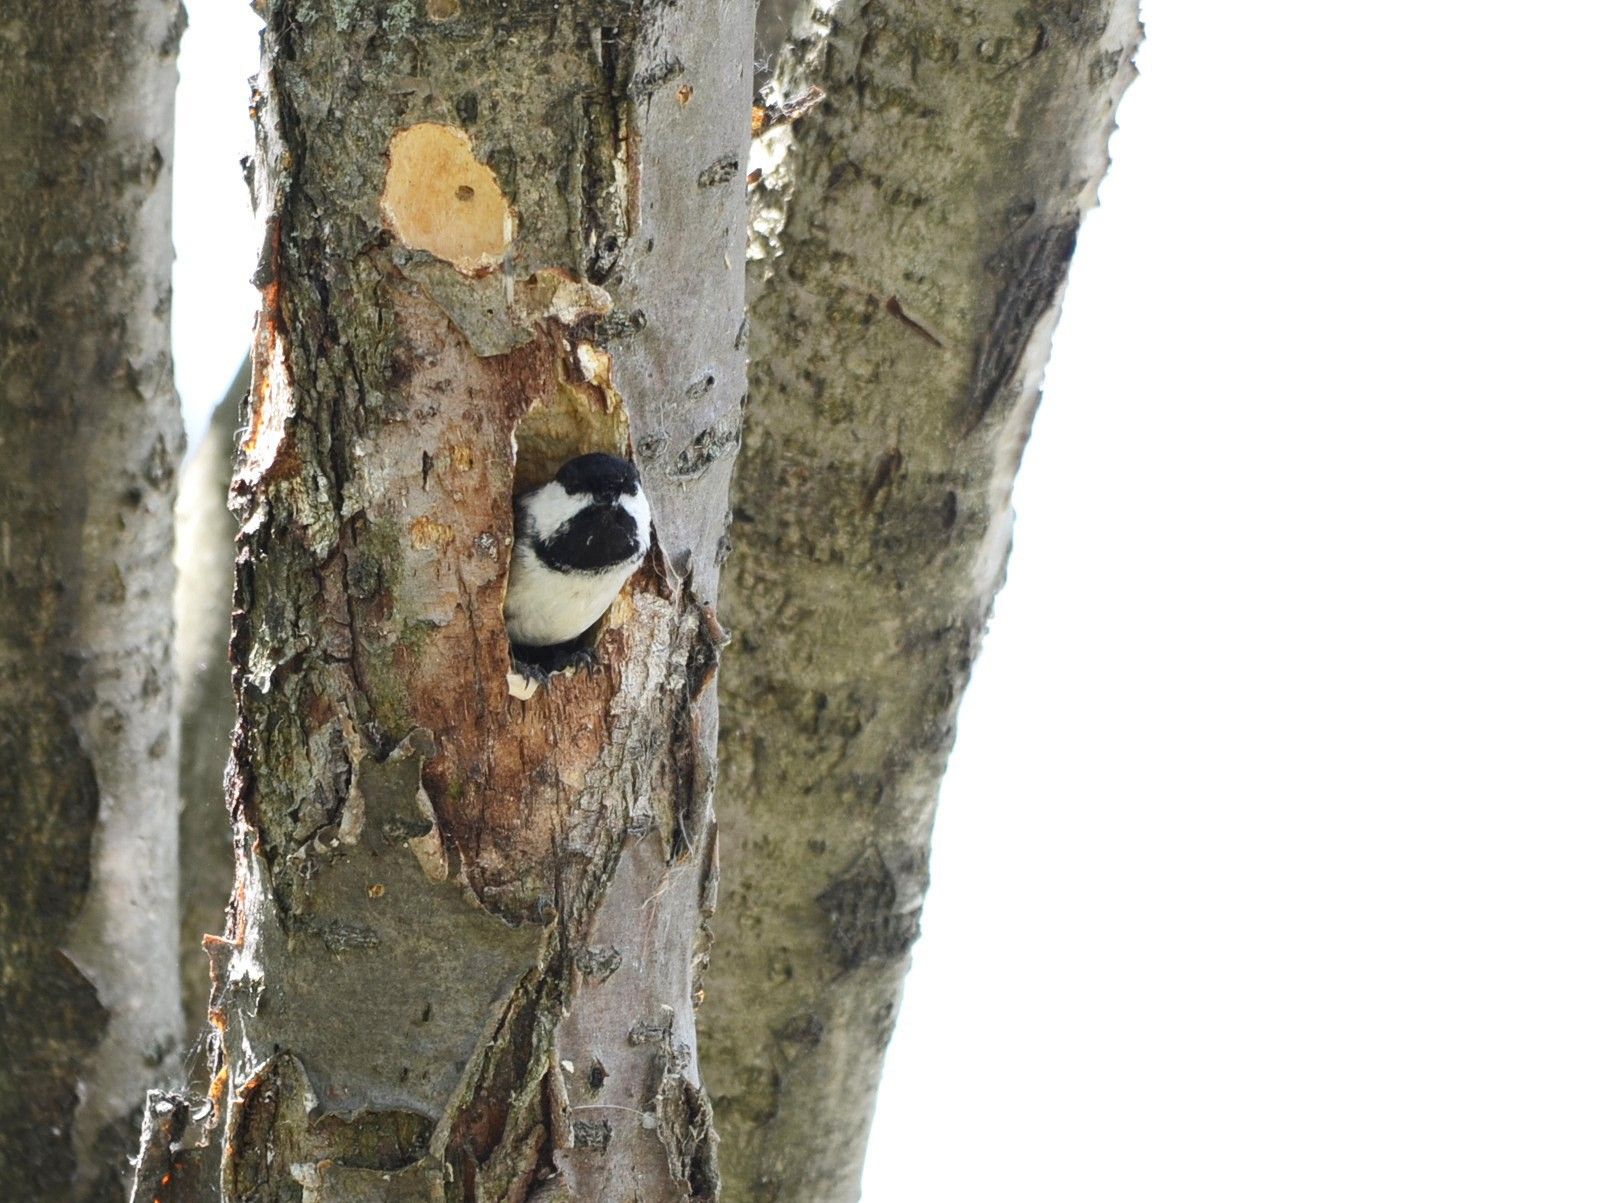 Black-capped Chickadee - Monique Maynard